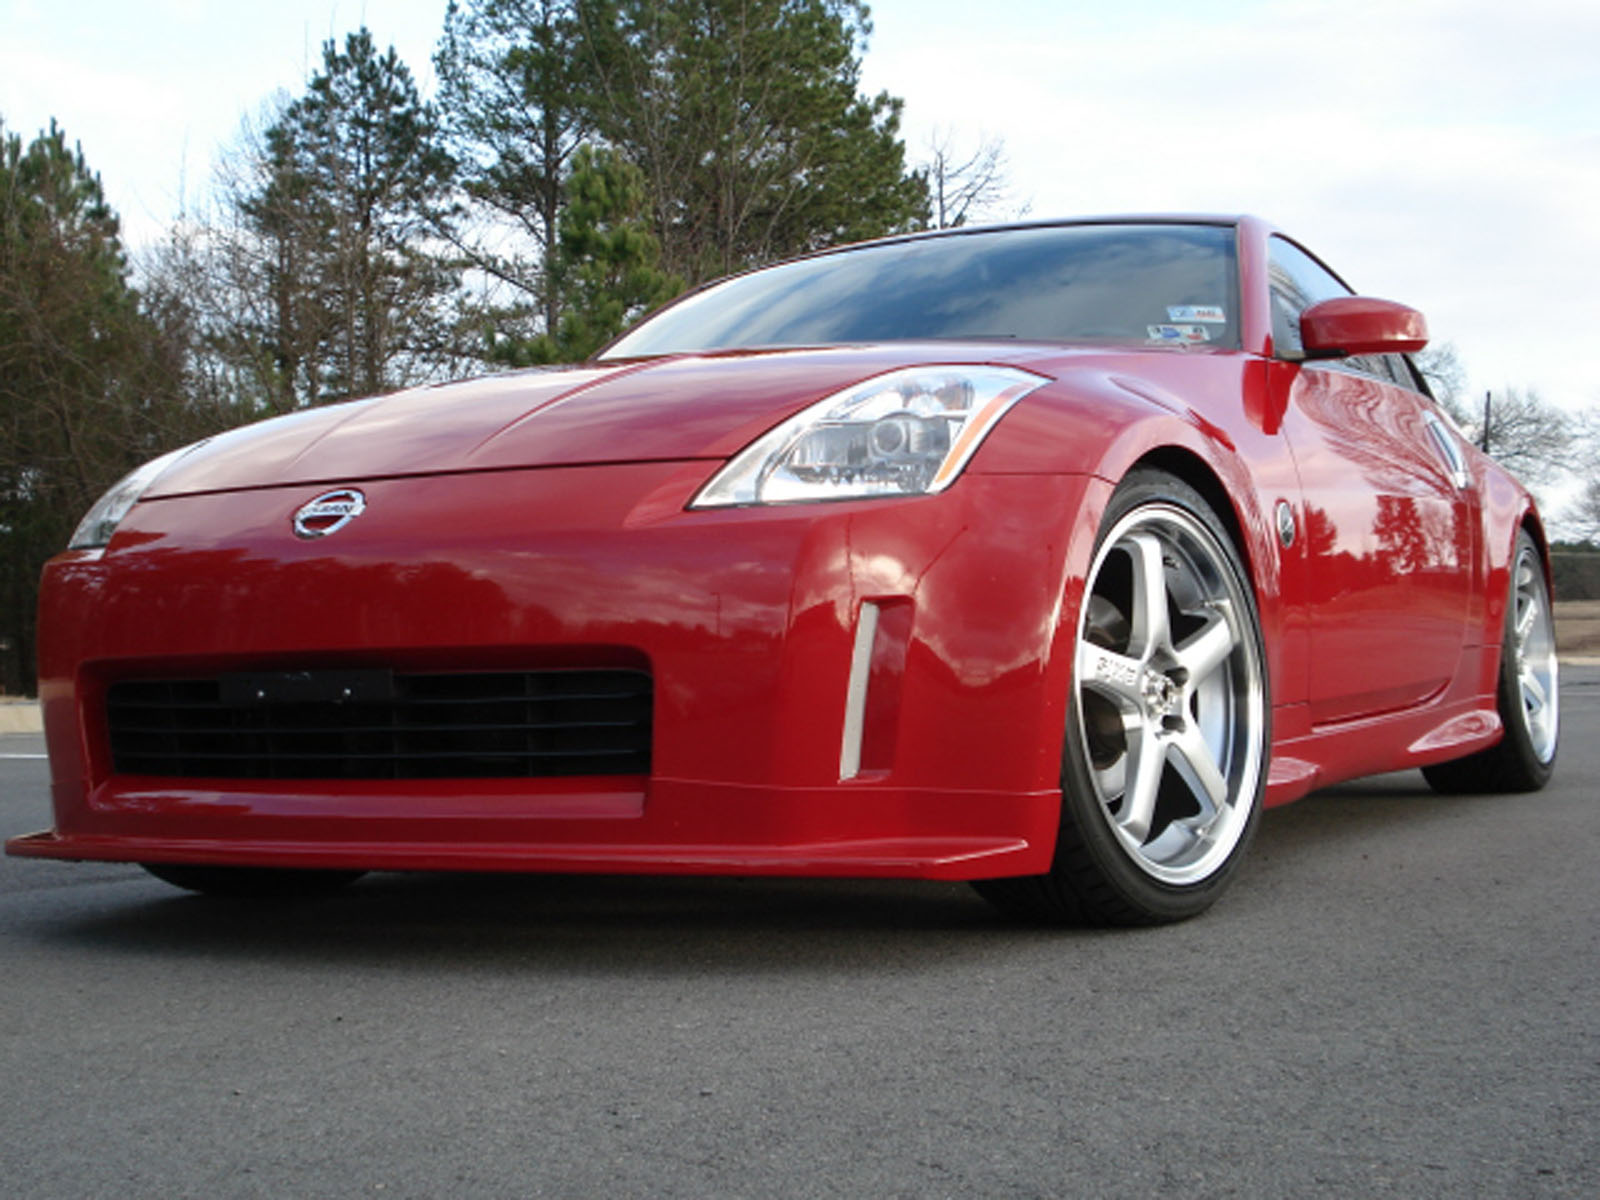 Twin Falls Nissan ... 350+Z+For+Sale for sale no trades fullscreen gallery 2004 nissan 350z